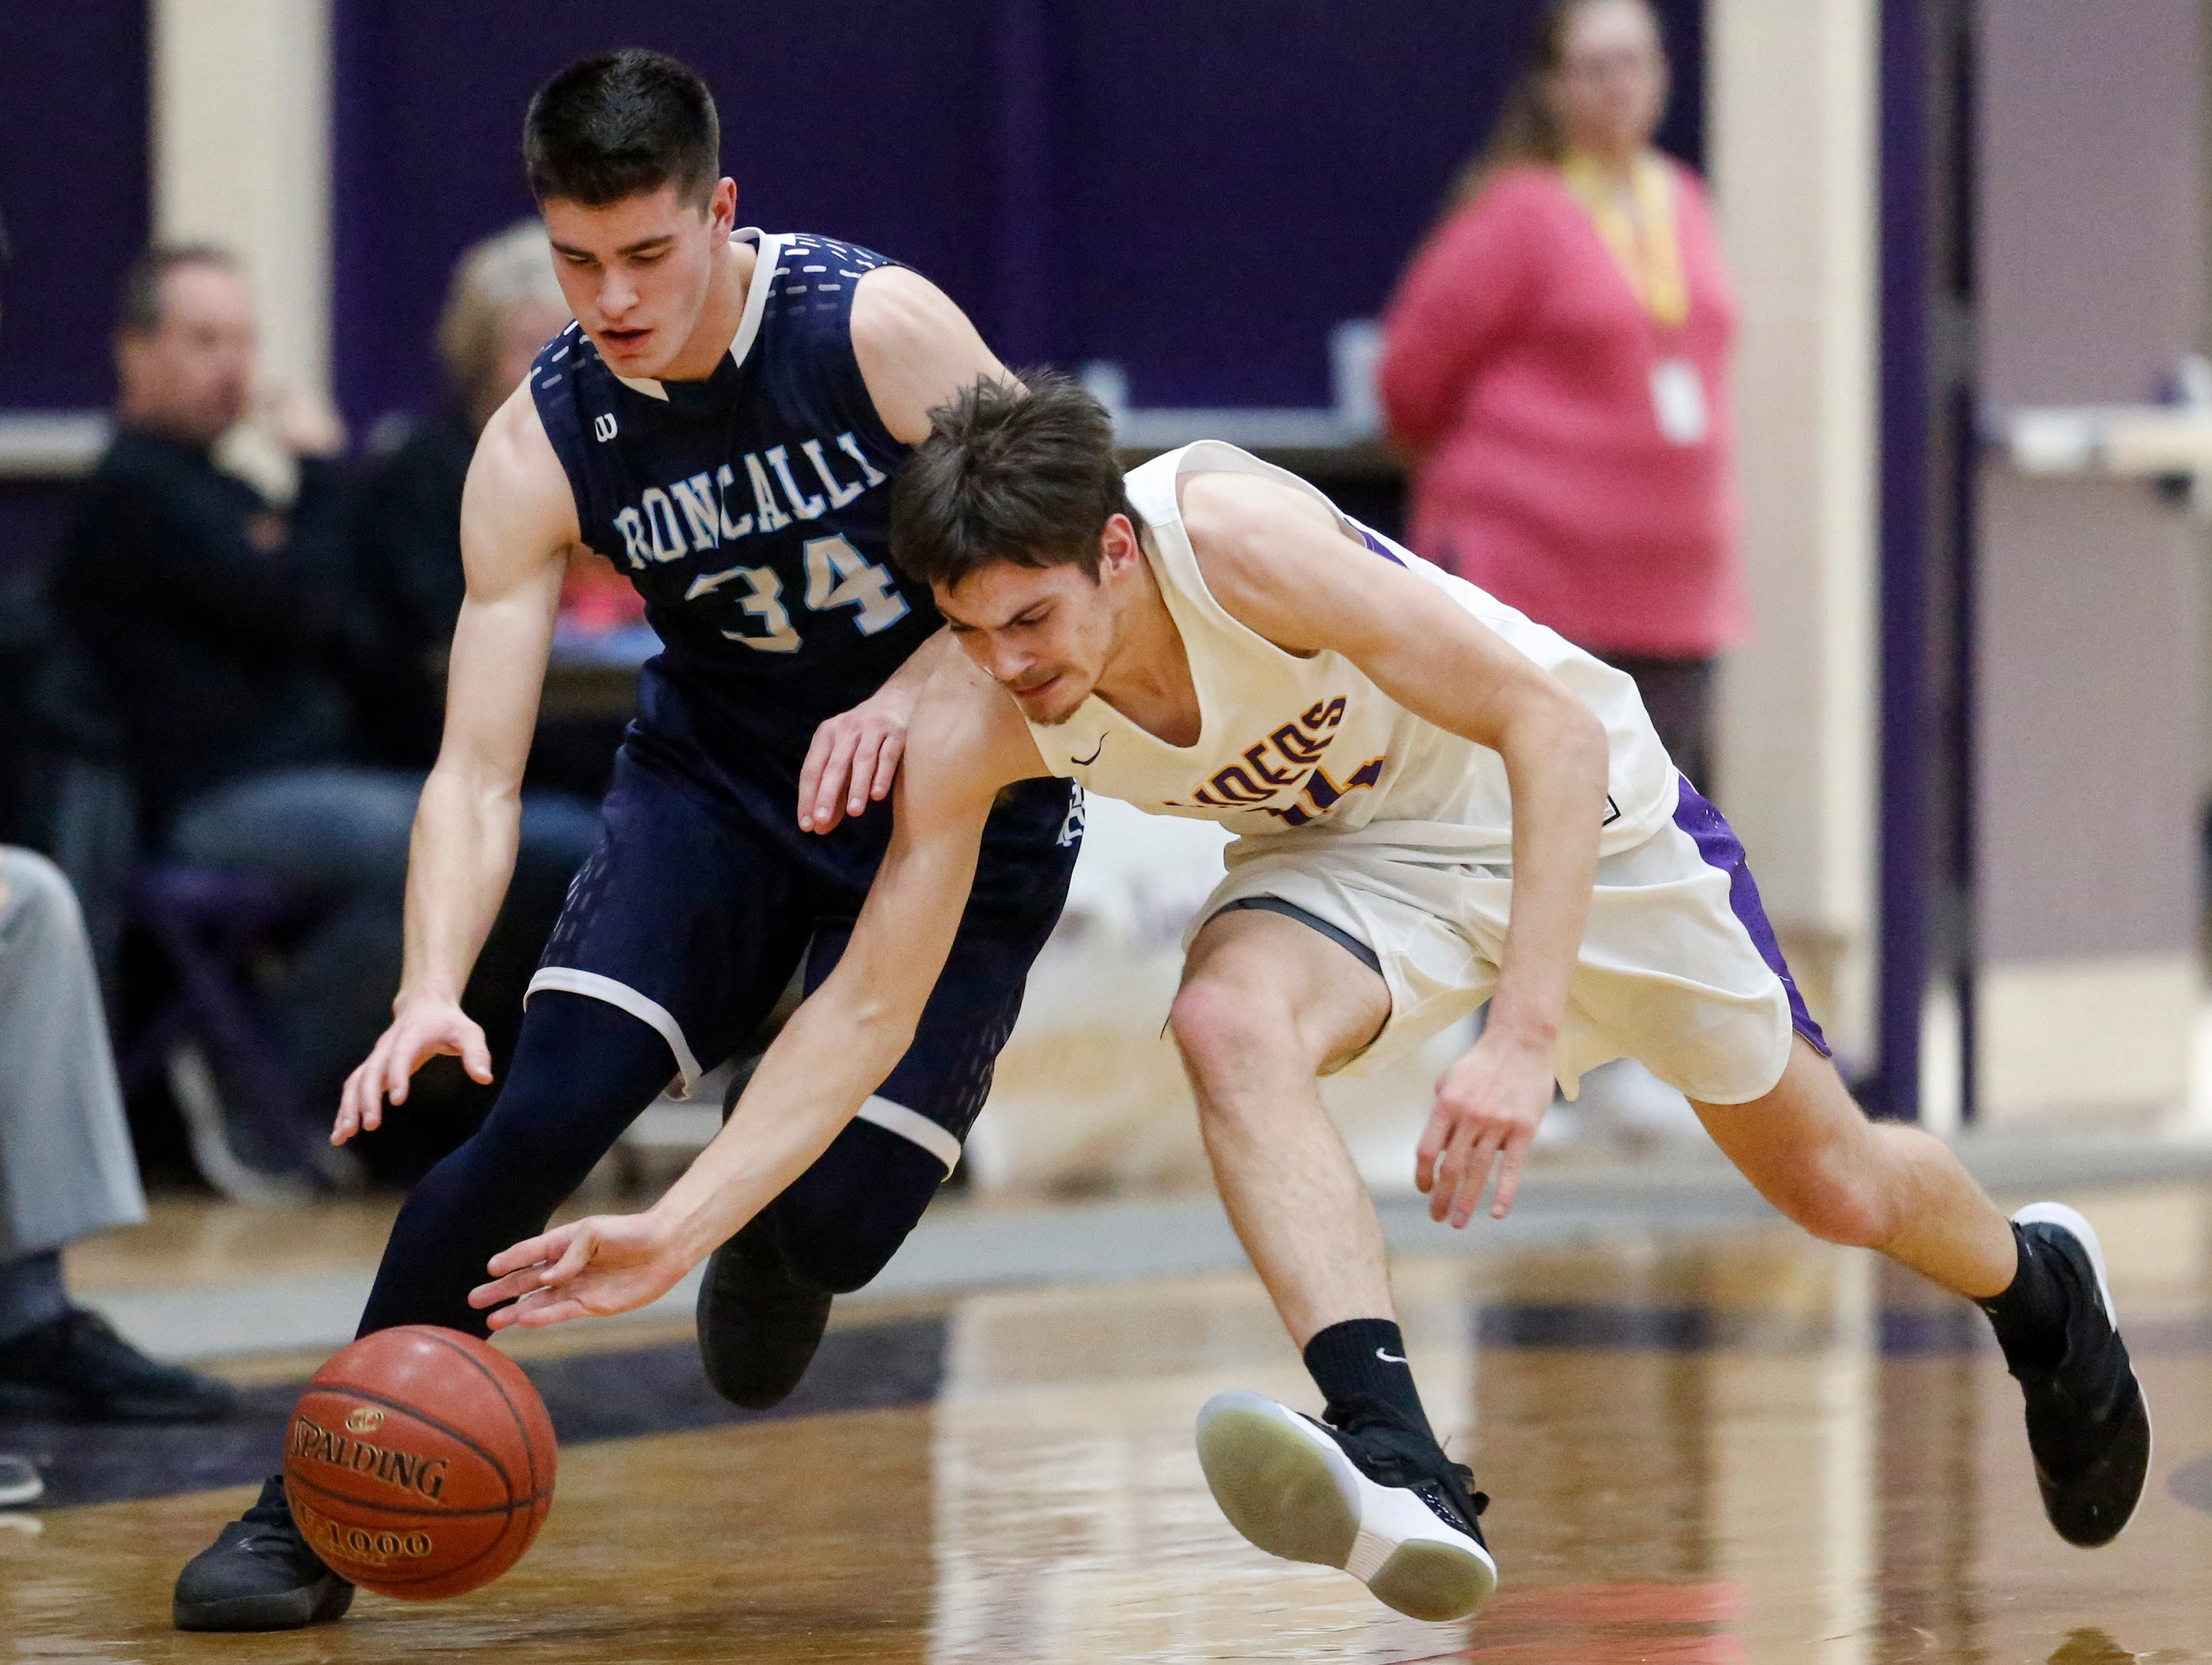 Two Rivers' Trent Van Ess (14) tips the ball away from Roncalli's Ian Behringer (34) at Two Rivers High School Friday, February 1, 2019, in Two Rivers, Wis. Joshua Clark/USA TODAY NETWORK-Wisconsin